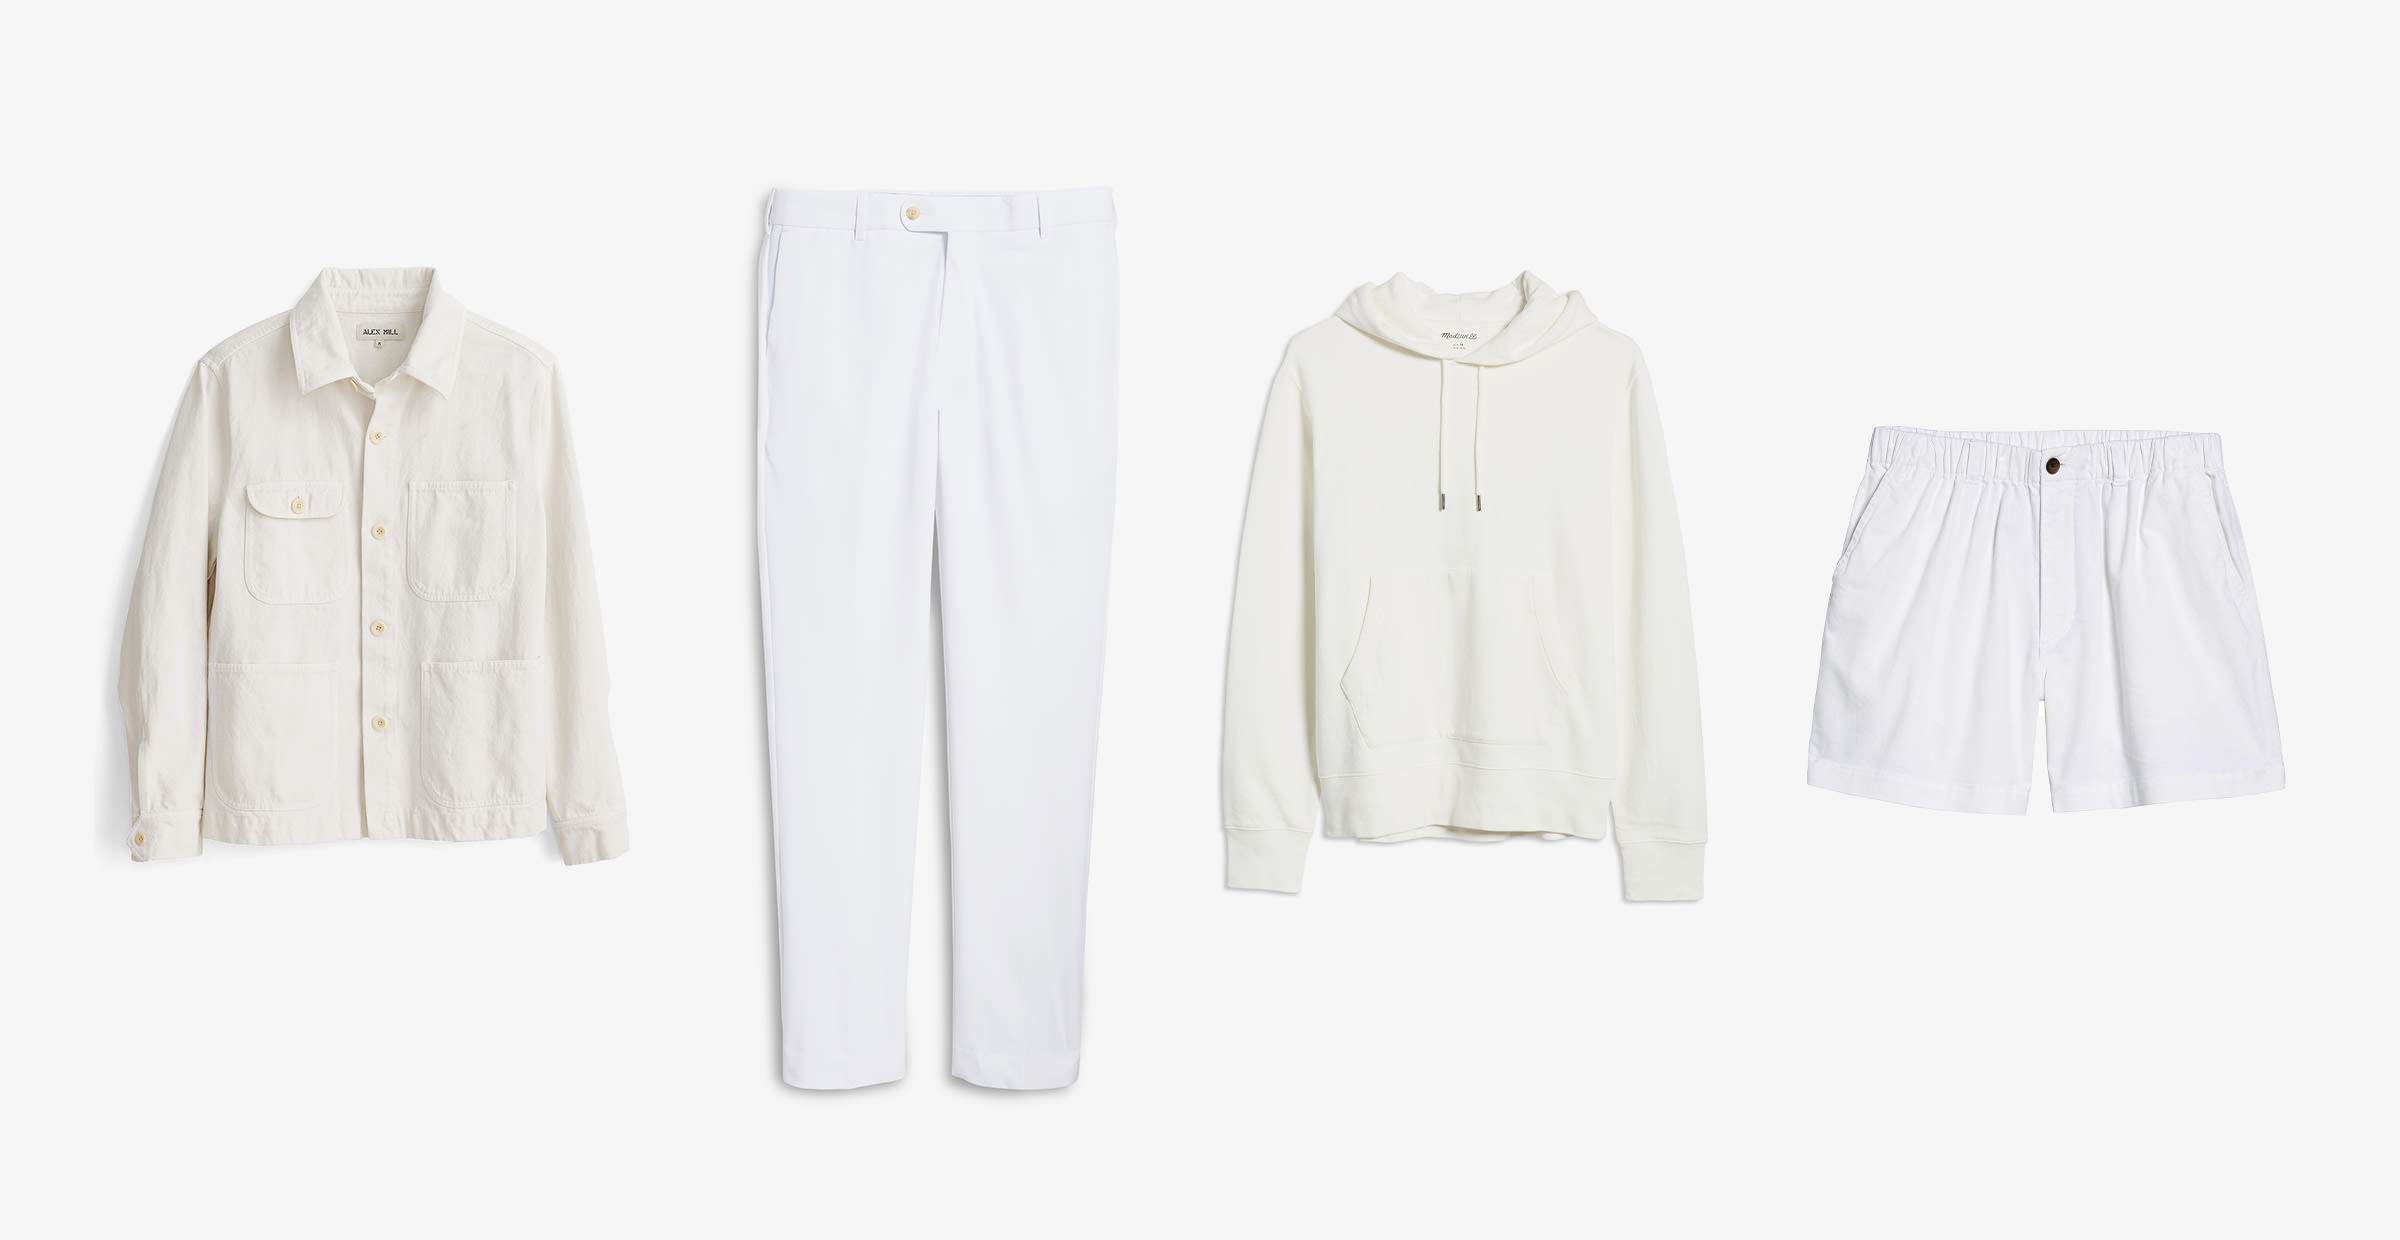 A jacket, pants, hoodie and shorts, all in varying shades of white.